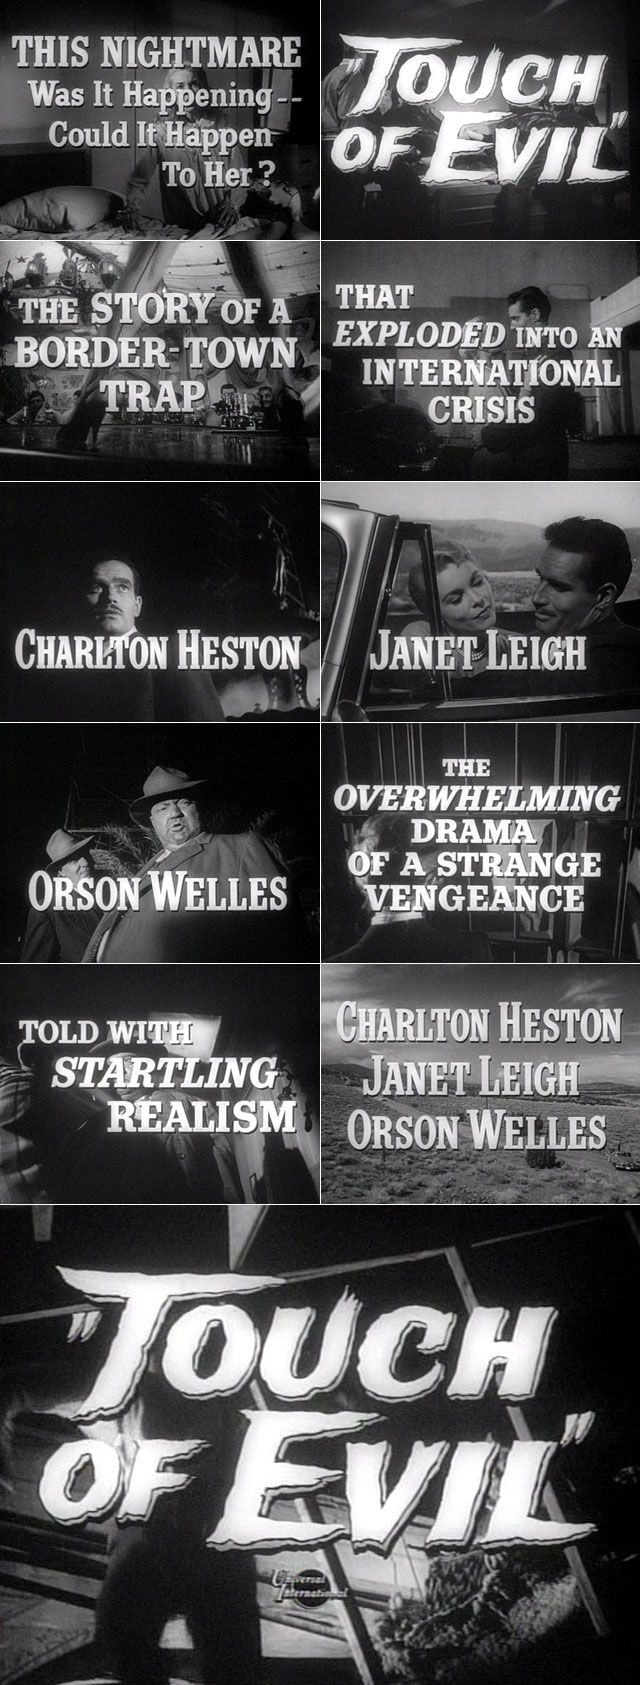 Touch of Evil (1958) Film noir movie trailer typography #filmnoir #1950s #noirvember